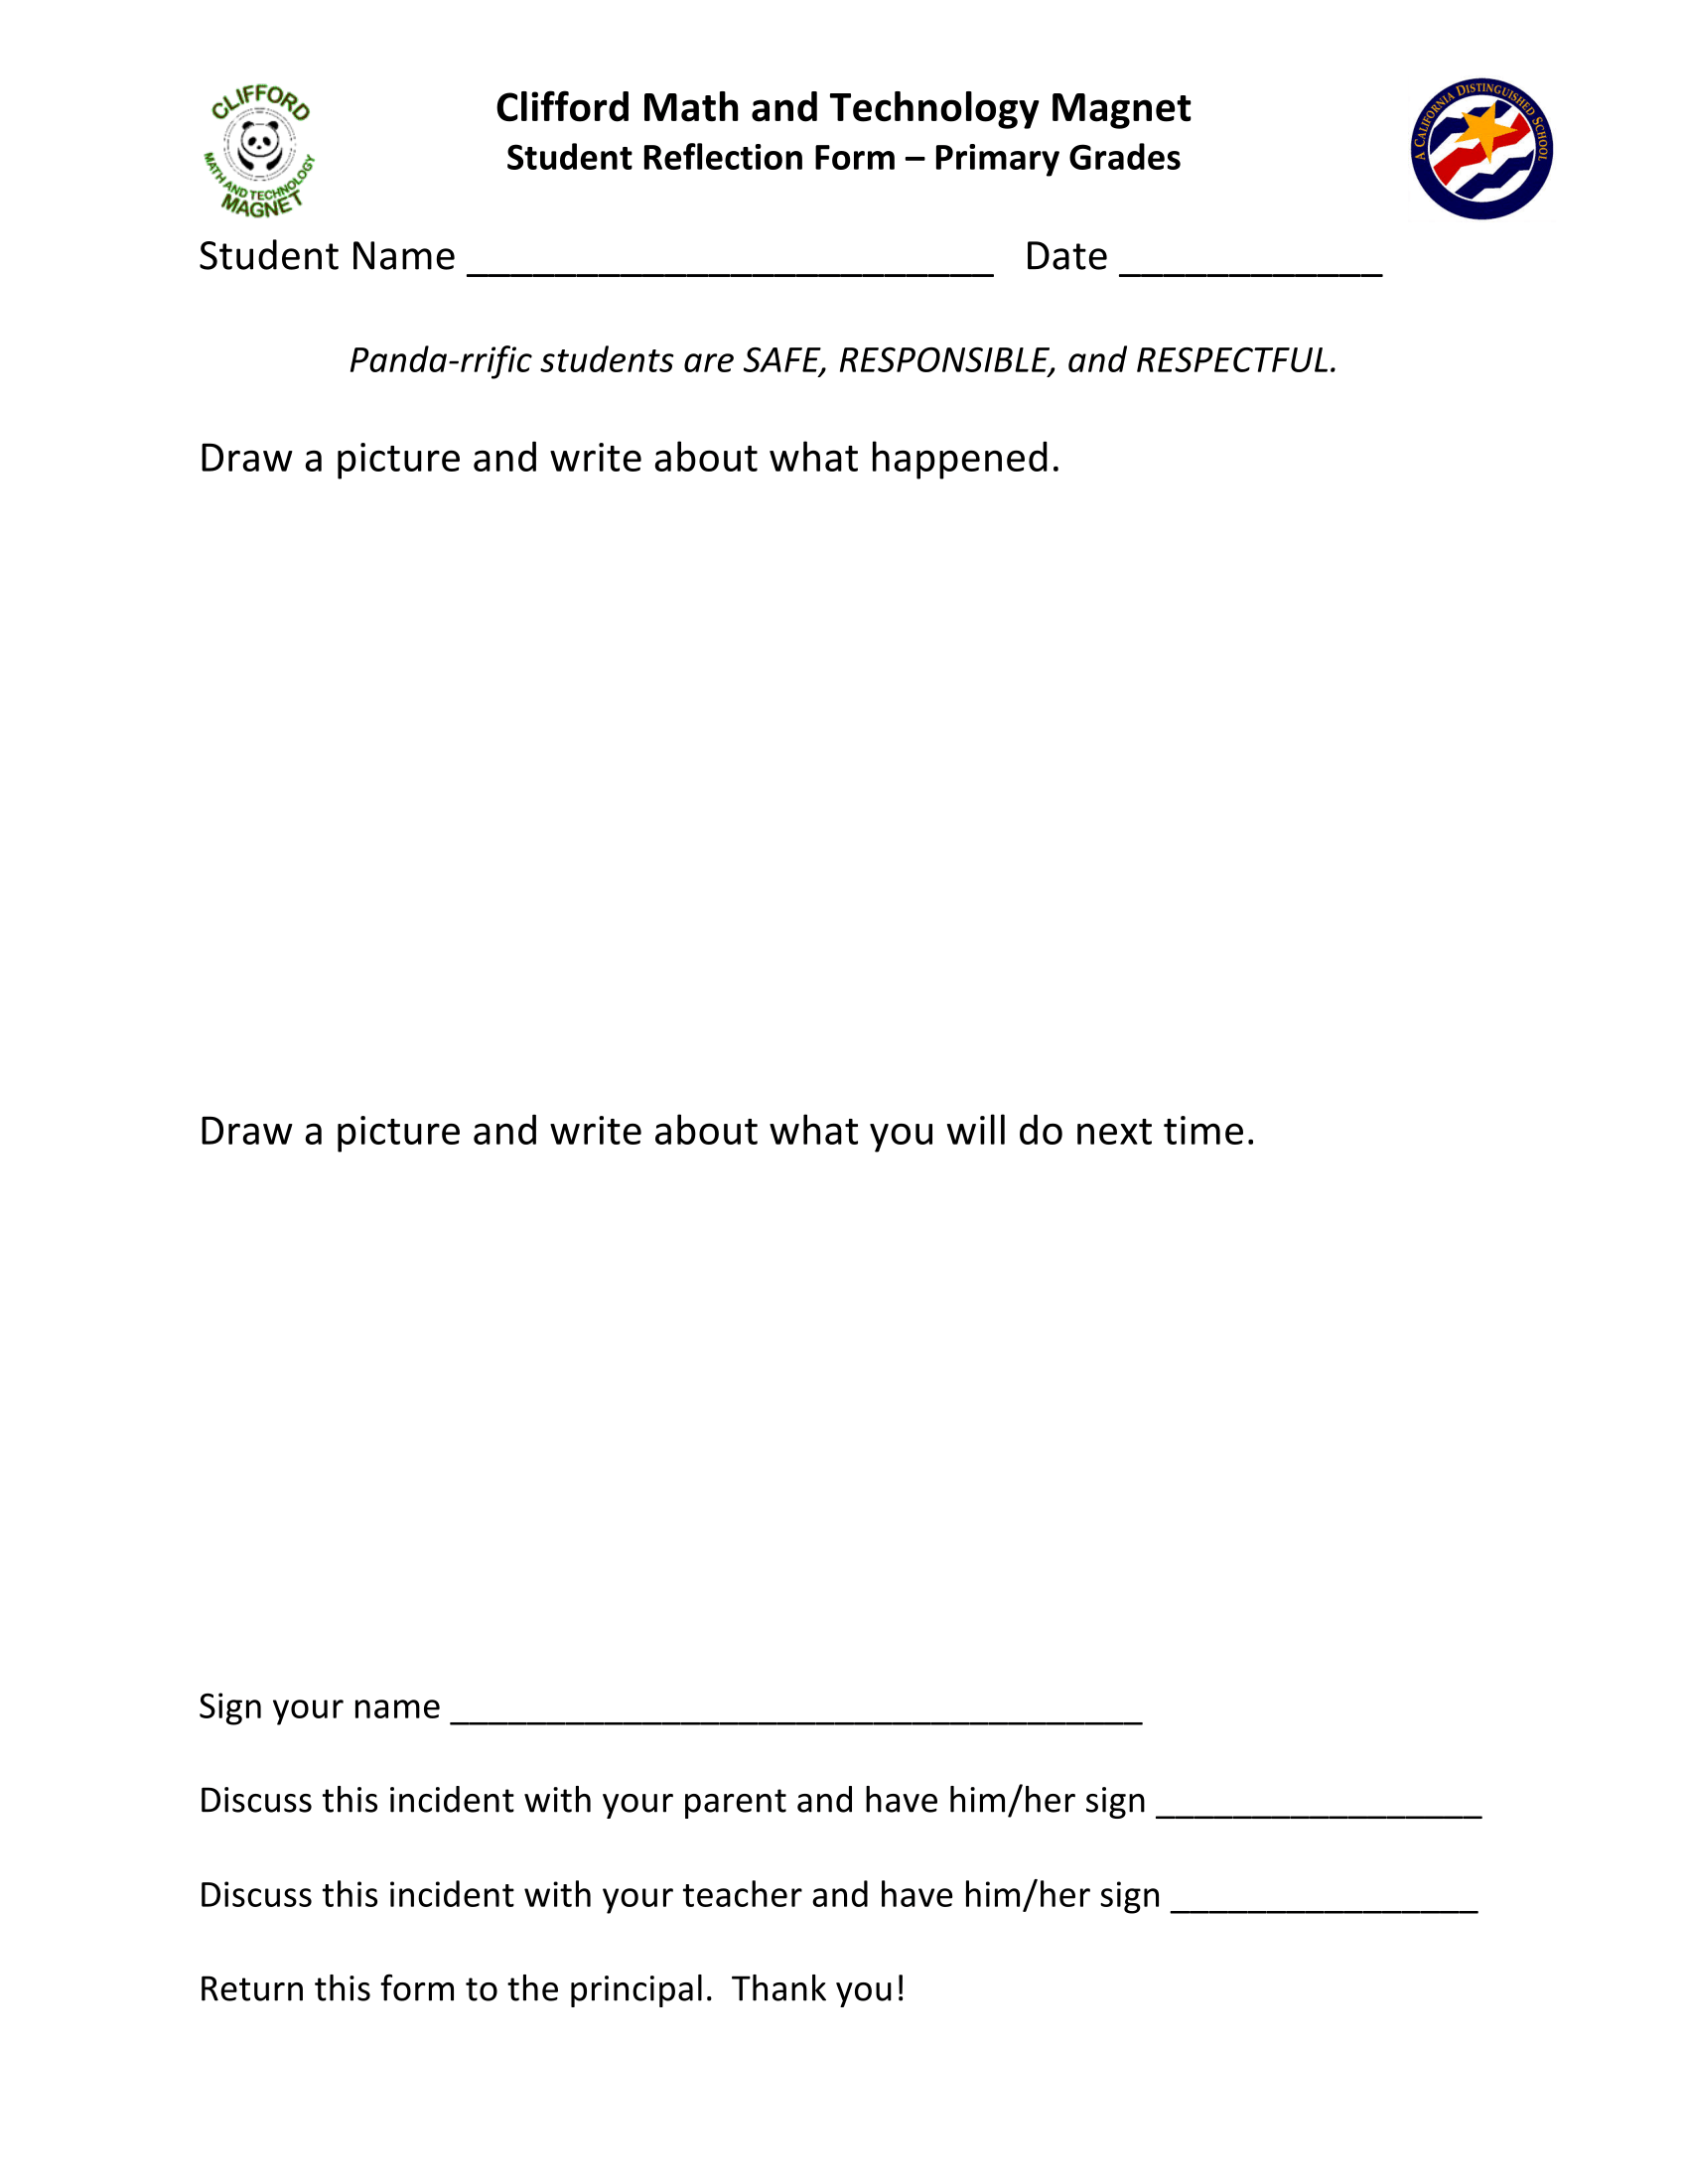 Reflection Form Primary Grades-1.png